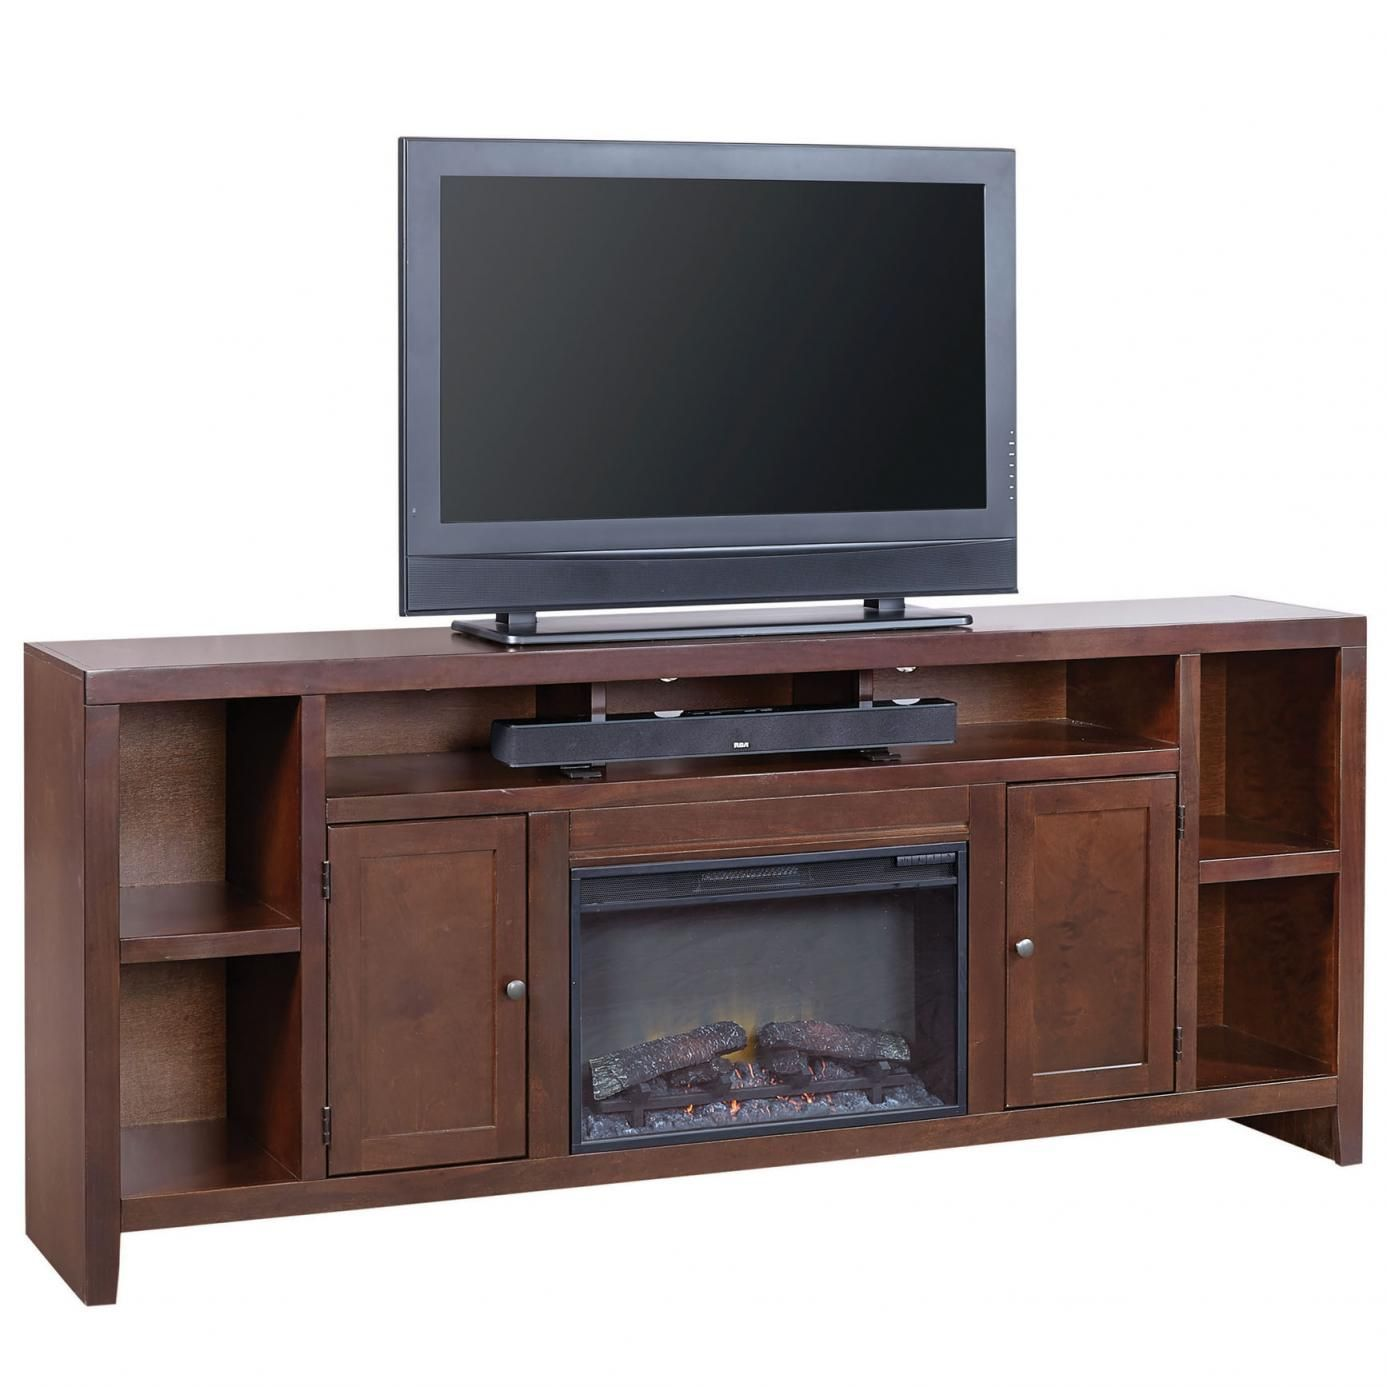 Aspenhome essentials lifestyle inch fireplace console furniture